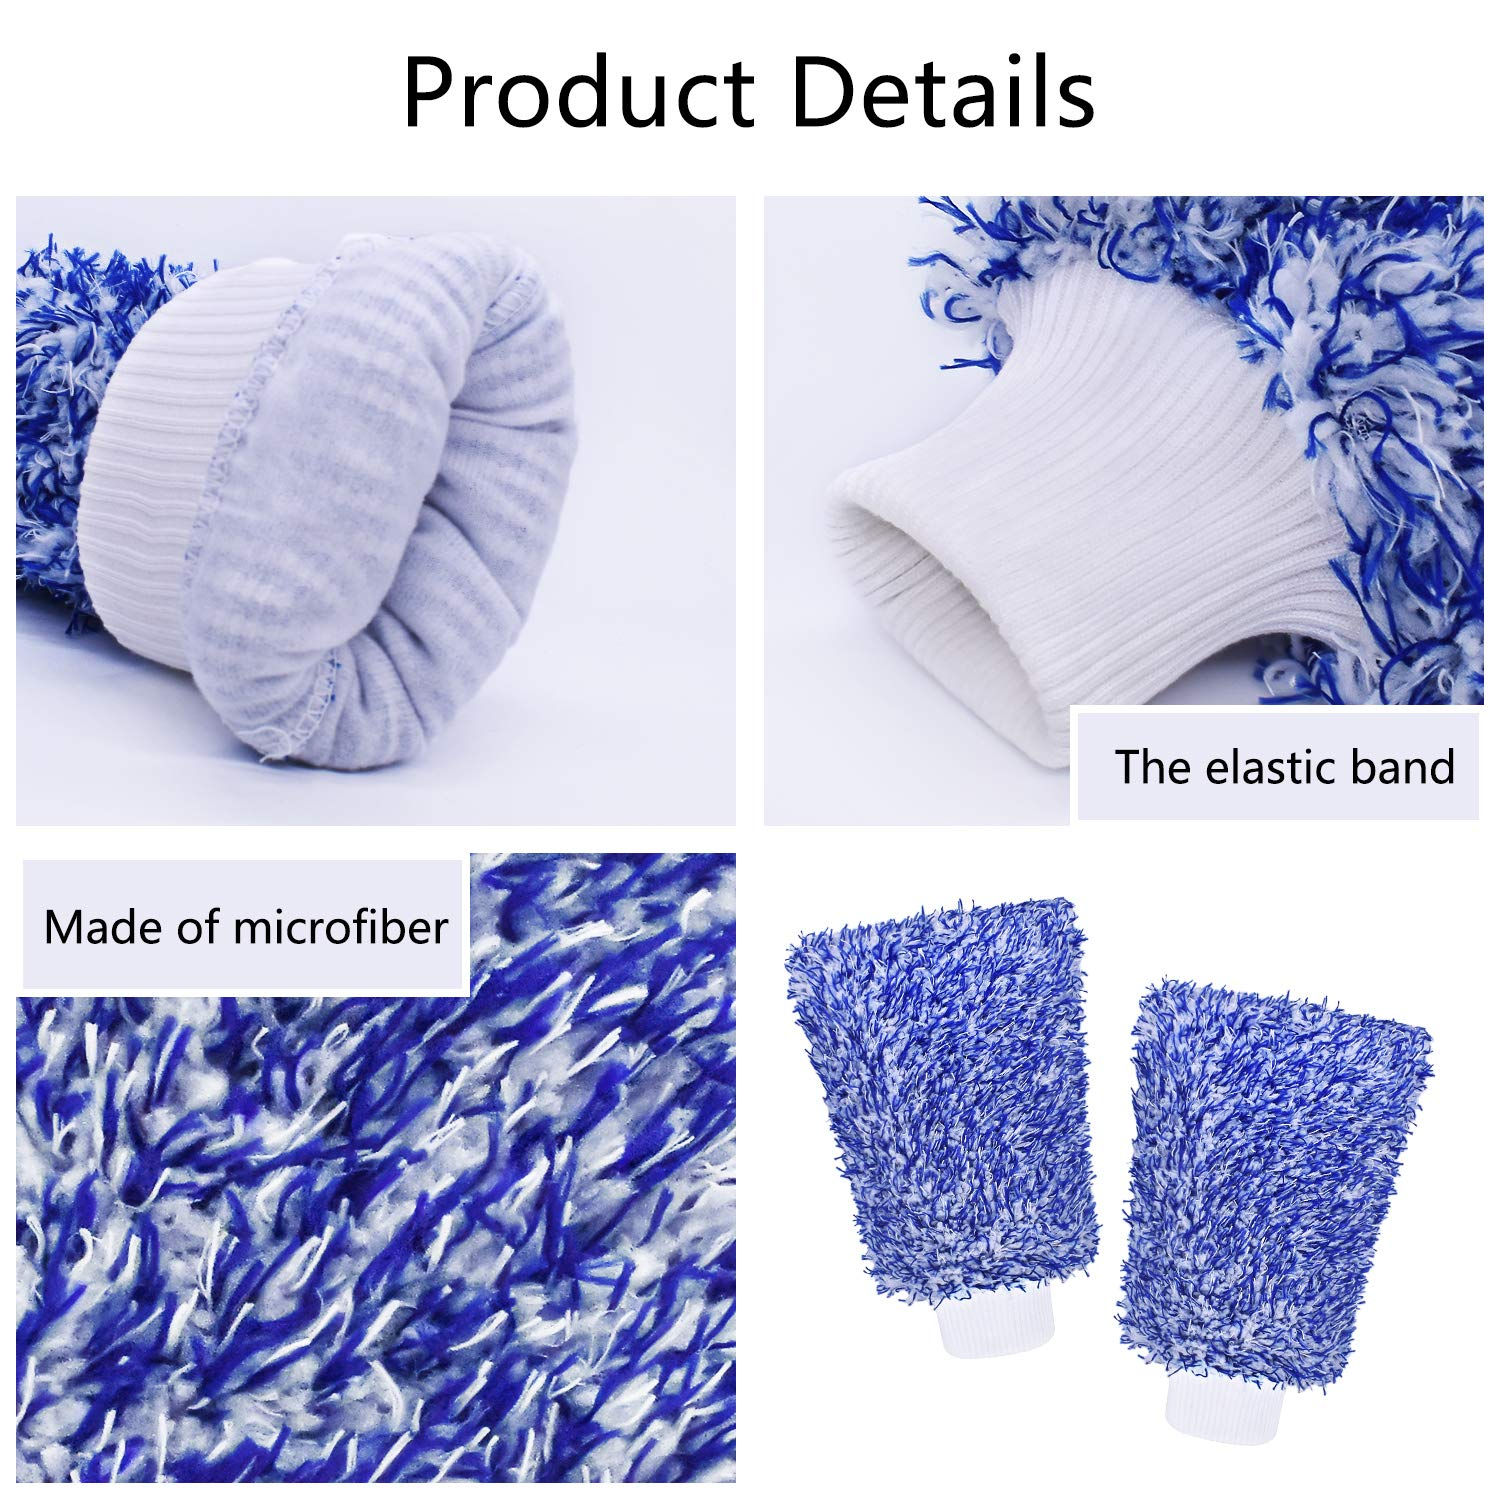 Mokani Microfiber Car Wash Mitt Cleaning Gloves Equipment Sponges Blue 2 Sets Professional Scratch Free Polishing Cleaning Mitts